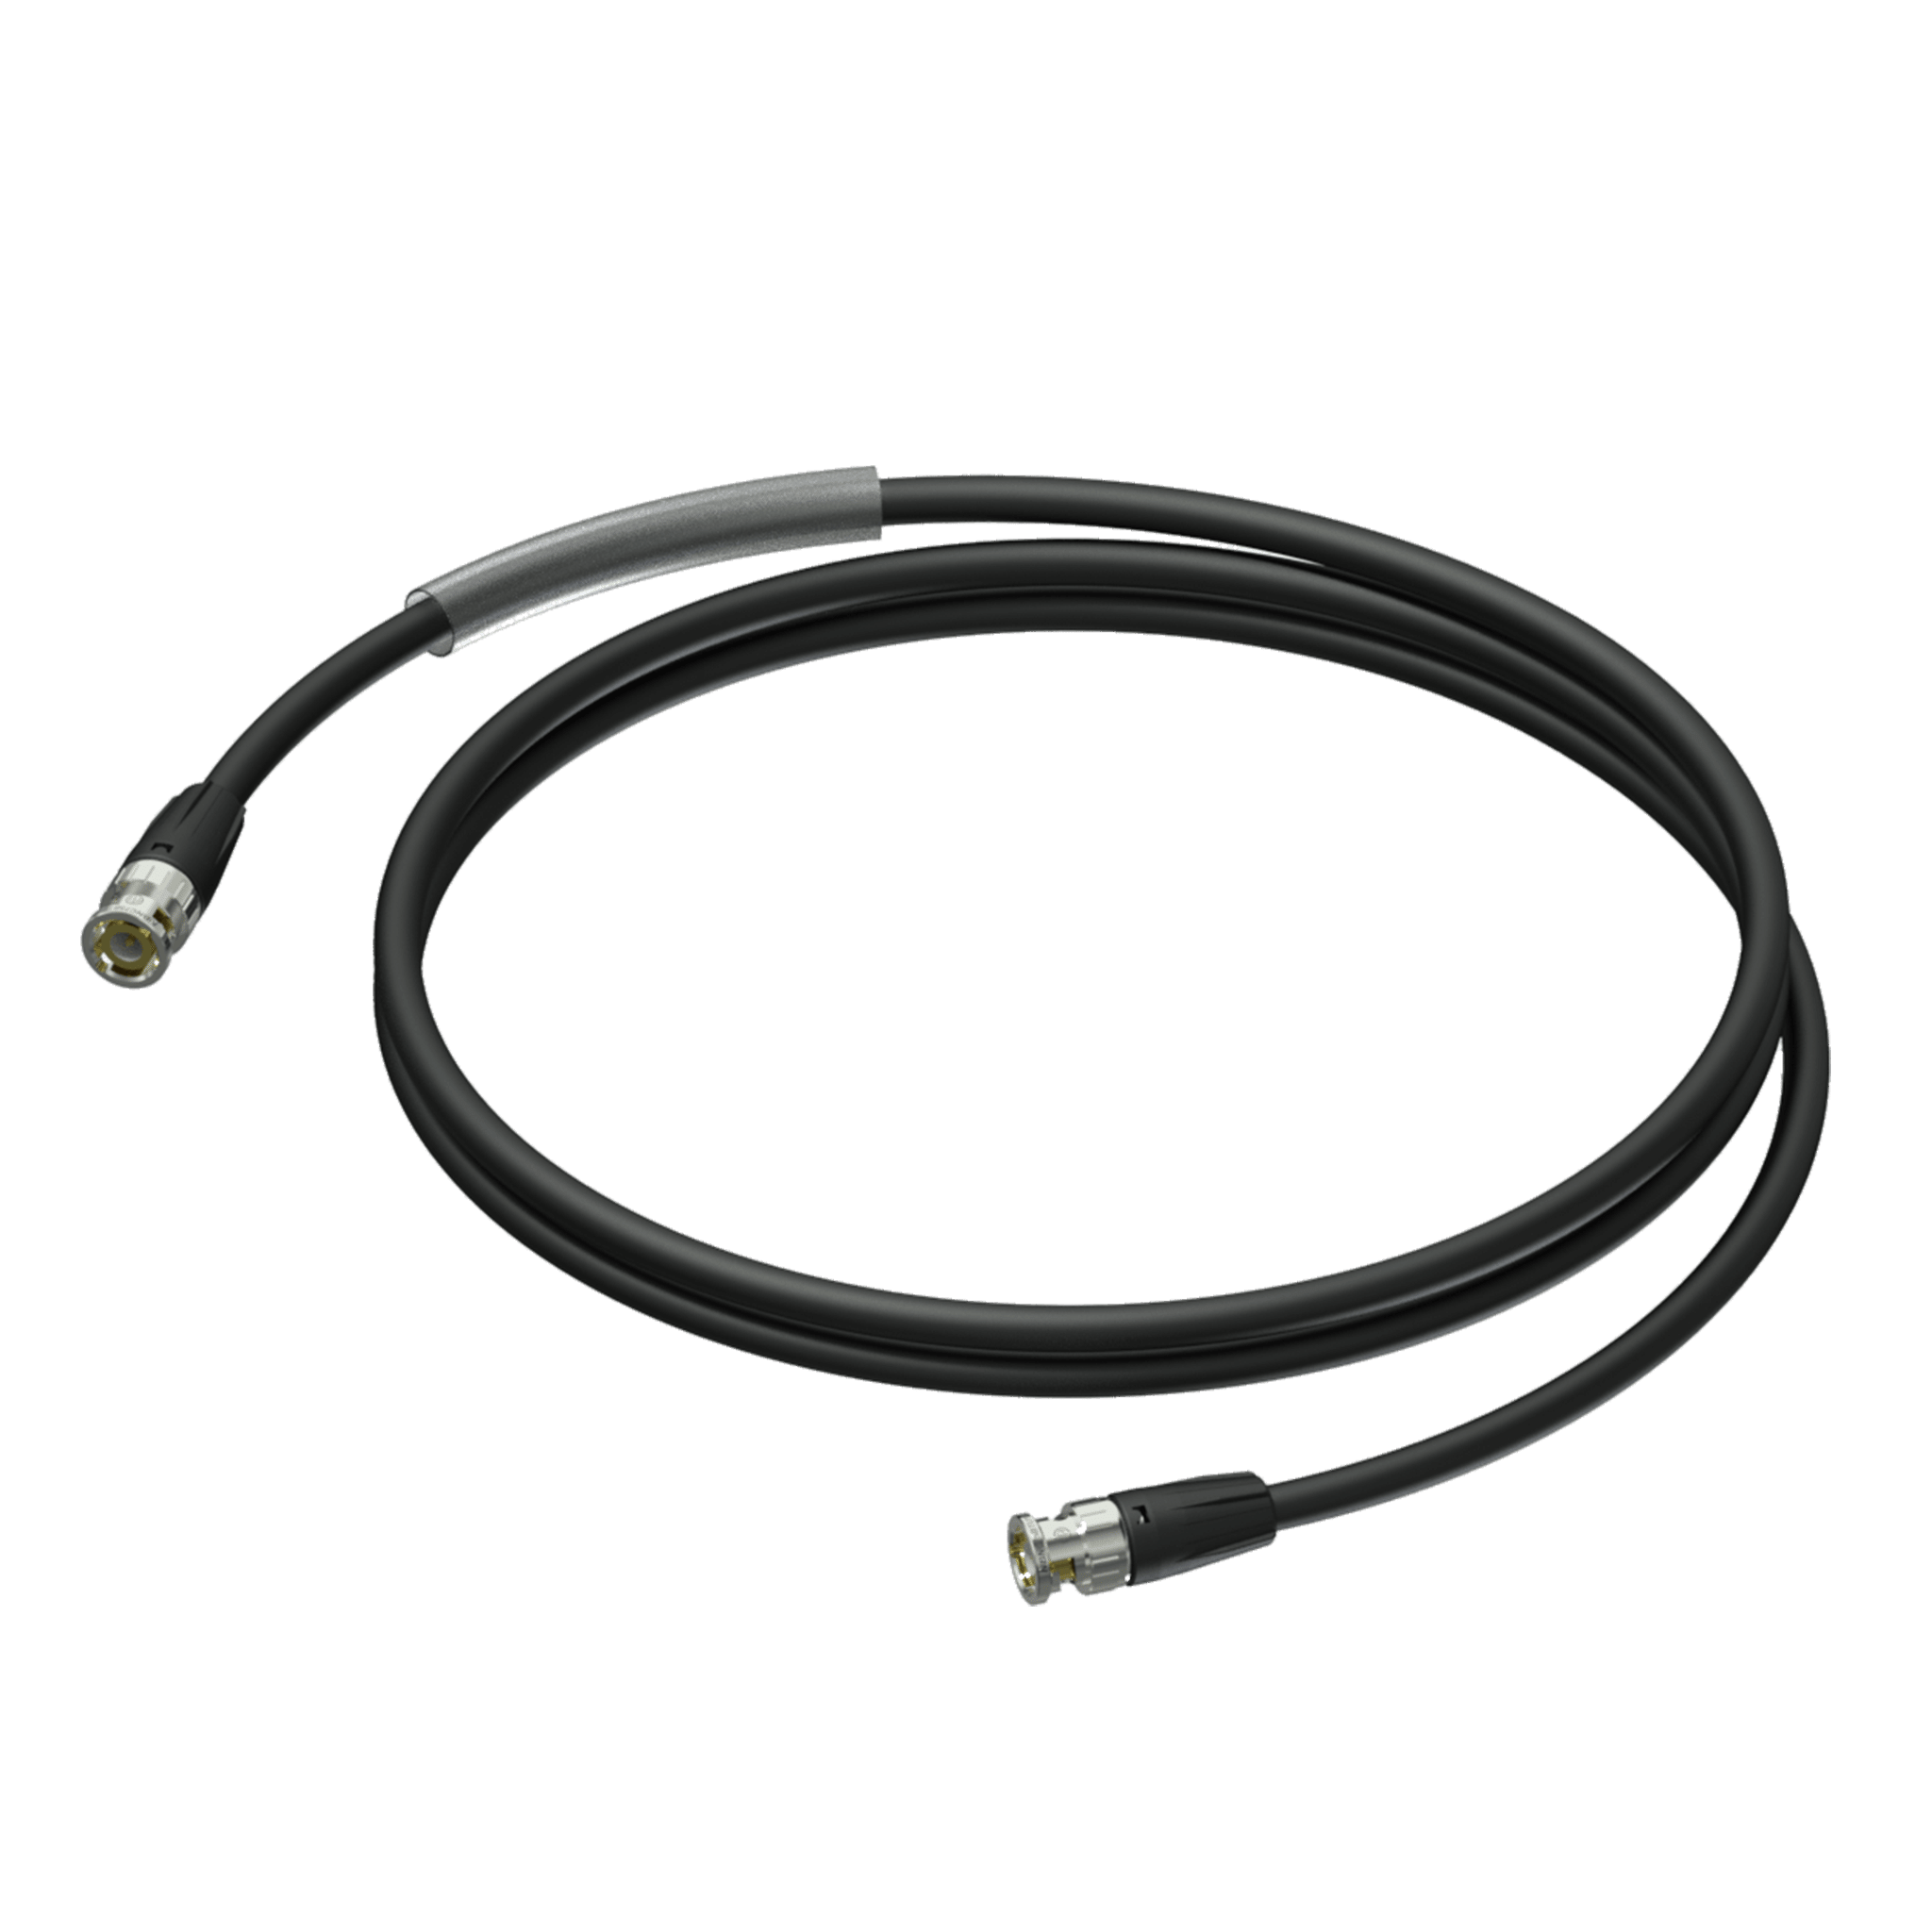 PRV158 - 3G-SDI cable - BNC male - BNC male - HighFlex™